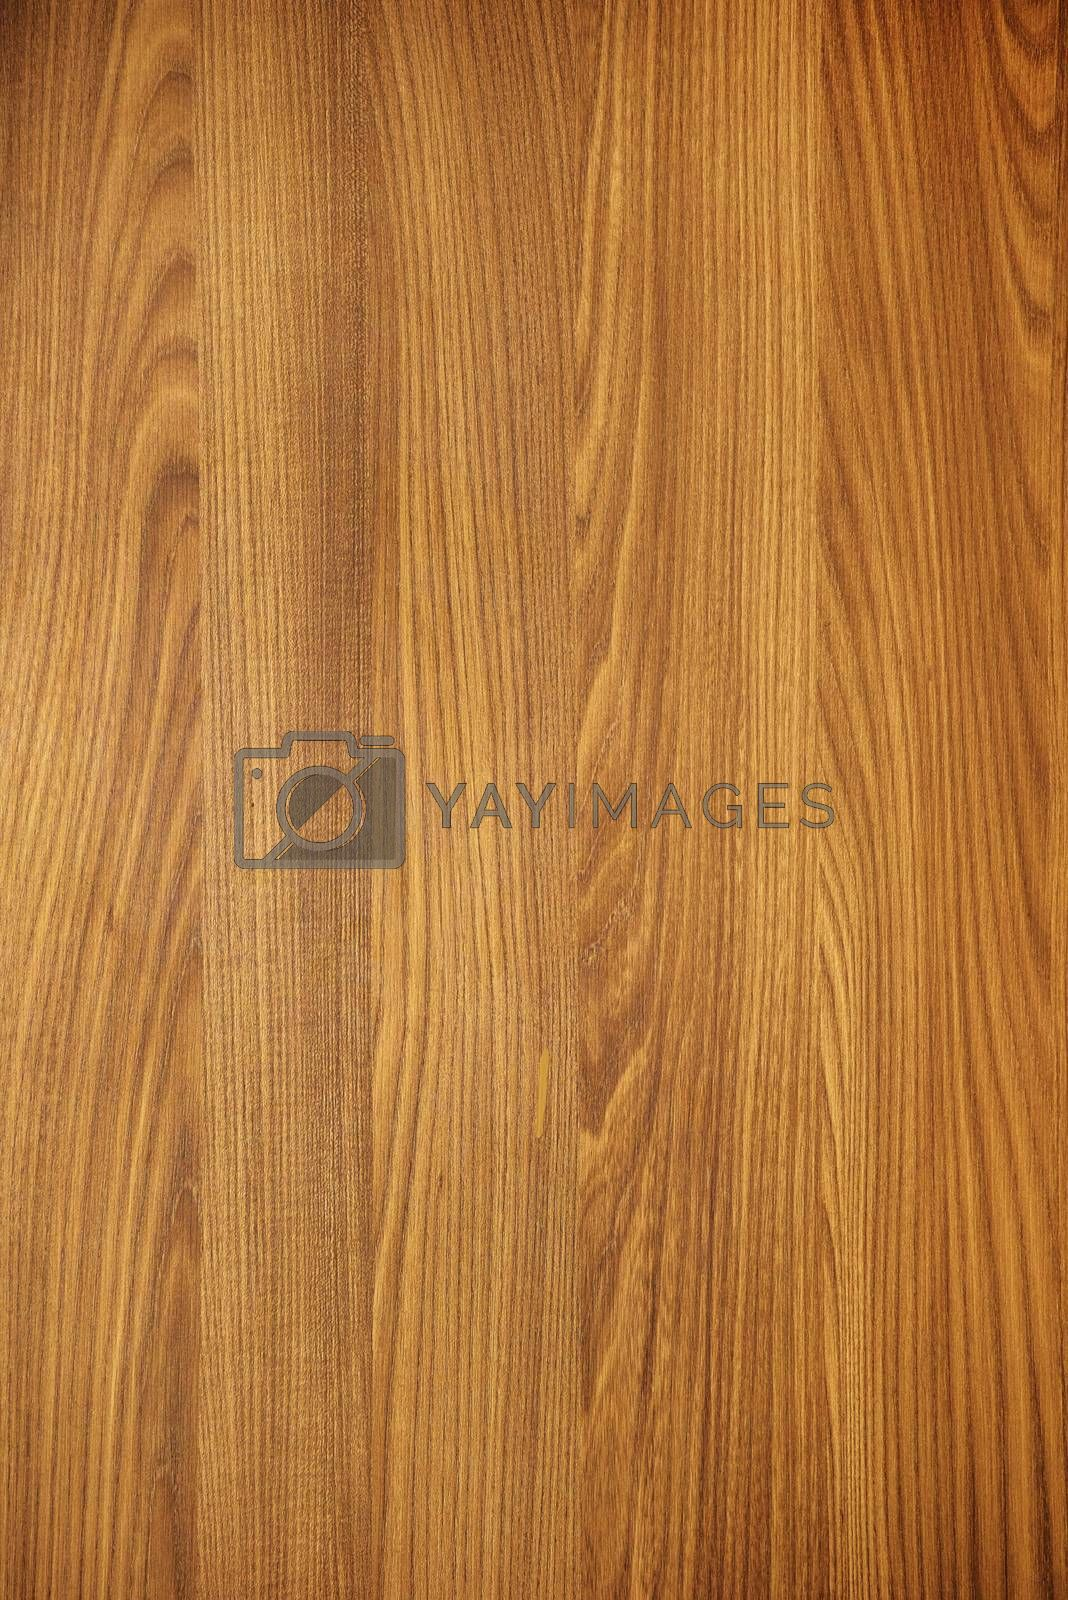 Brown wood texture background blank for design